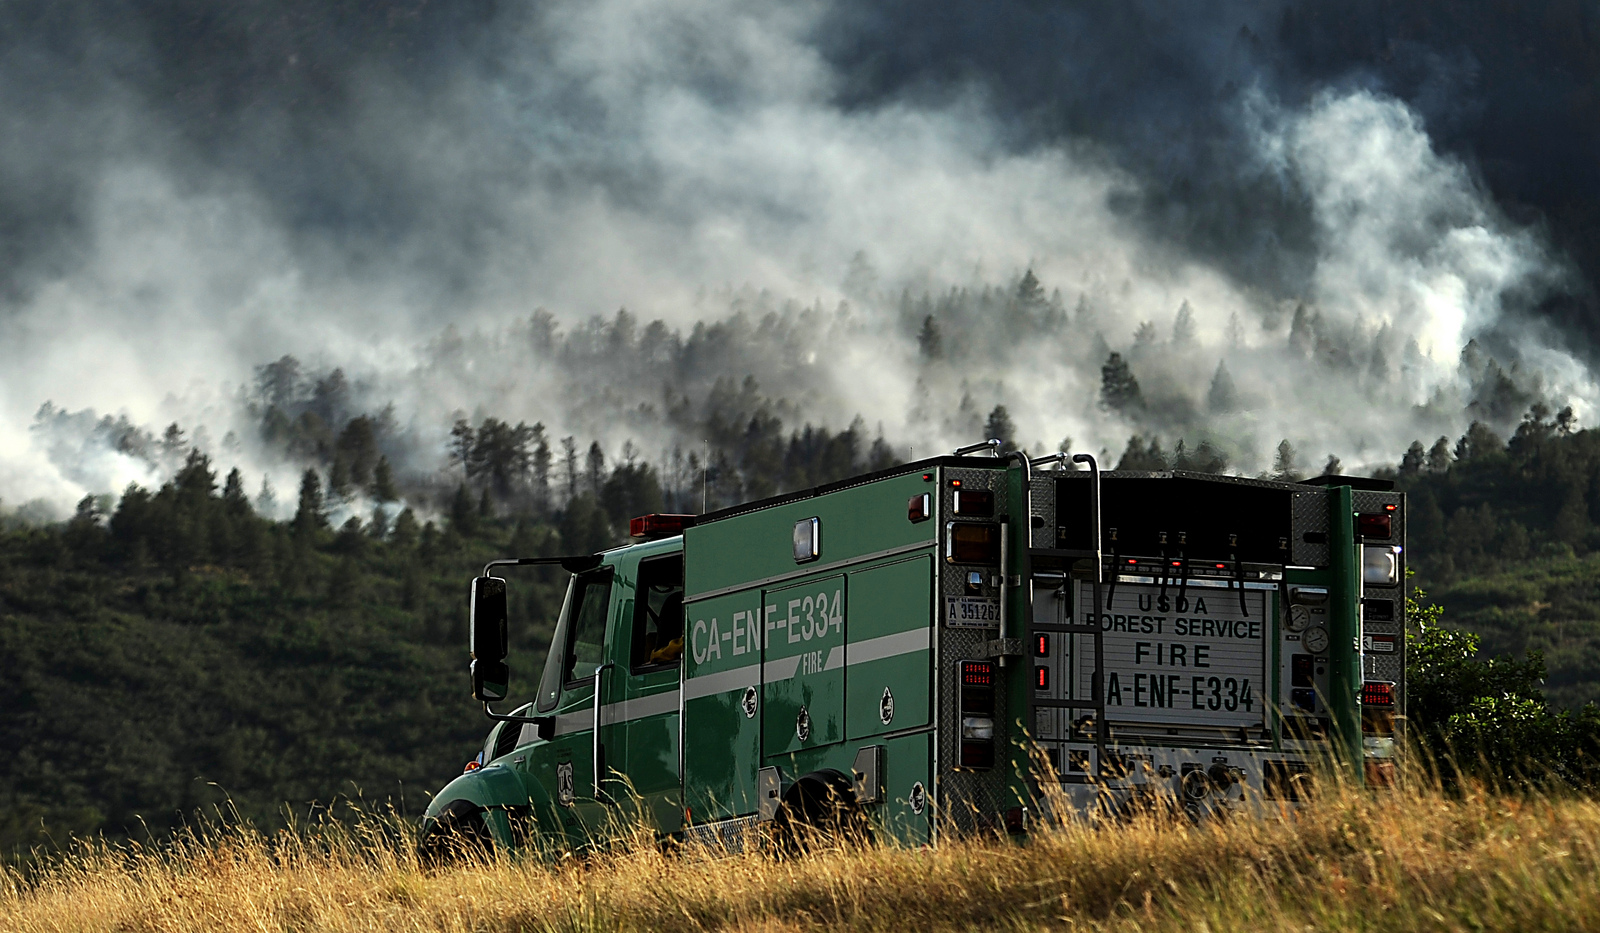 Photo: Wildfire, Waldo Canyon, Forest Service, Truck (Flickr/CC)